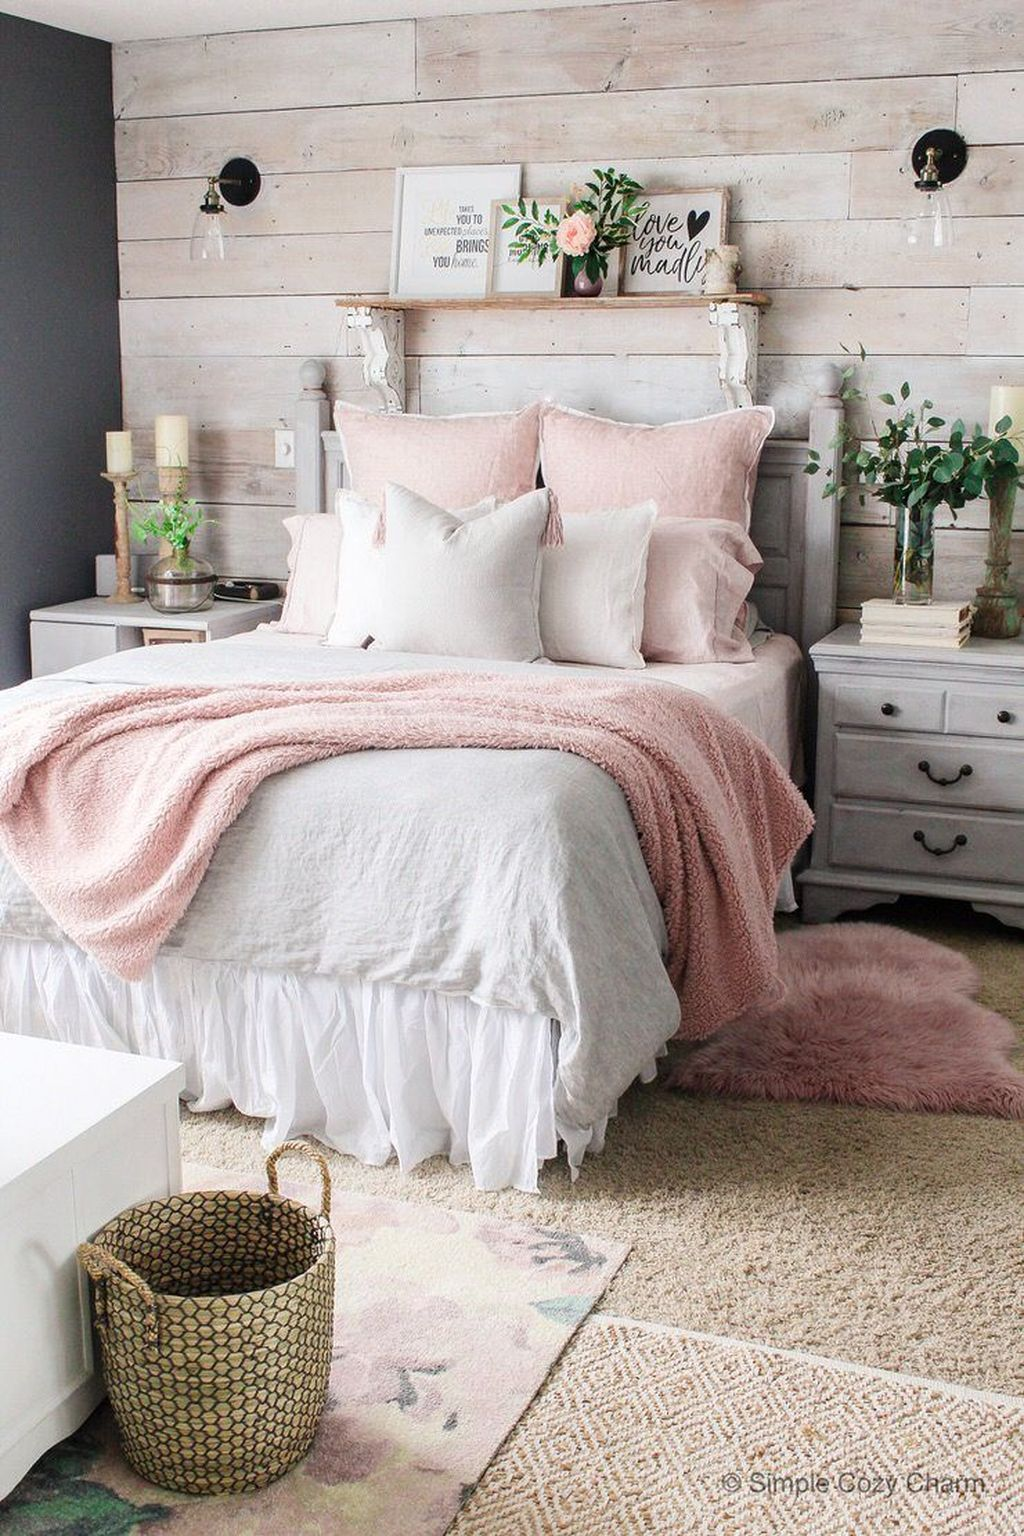 34 inspiring diy bedroom decor ideas you can try in 2020 on diy home decor on a budget apartment ideas id=83847